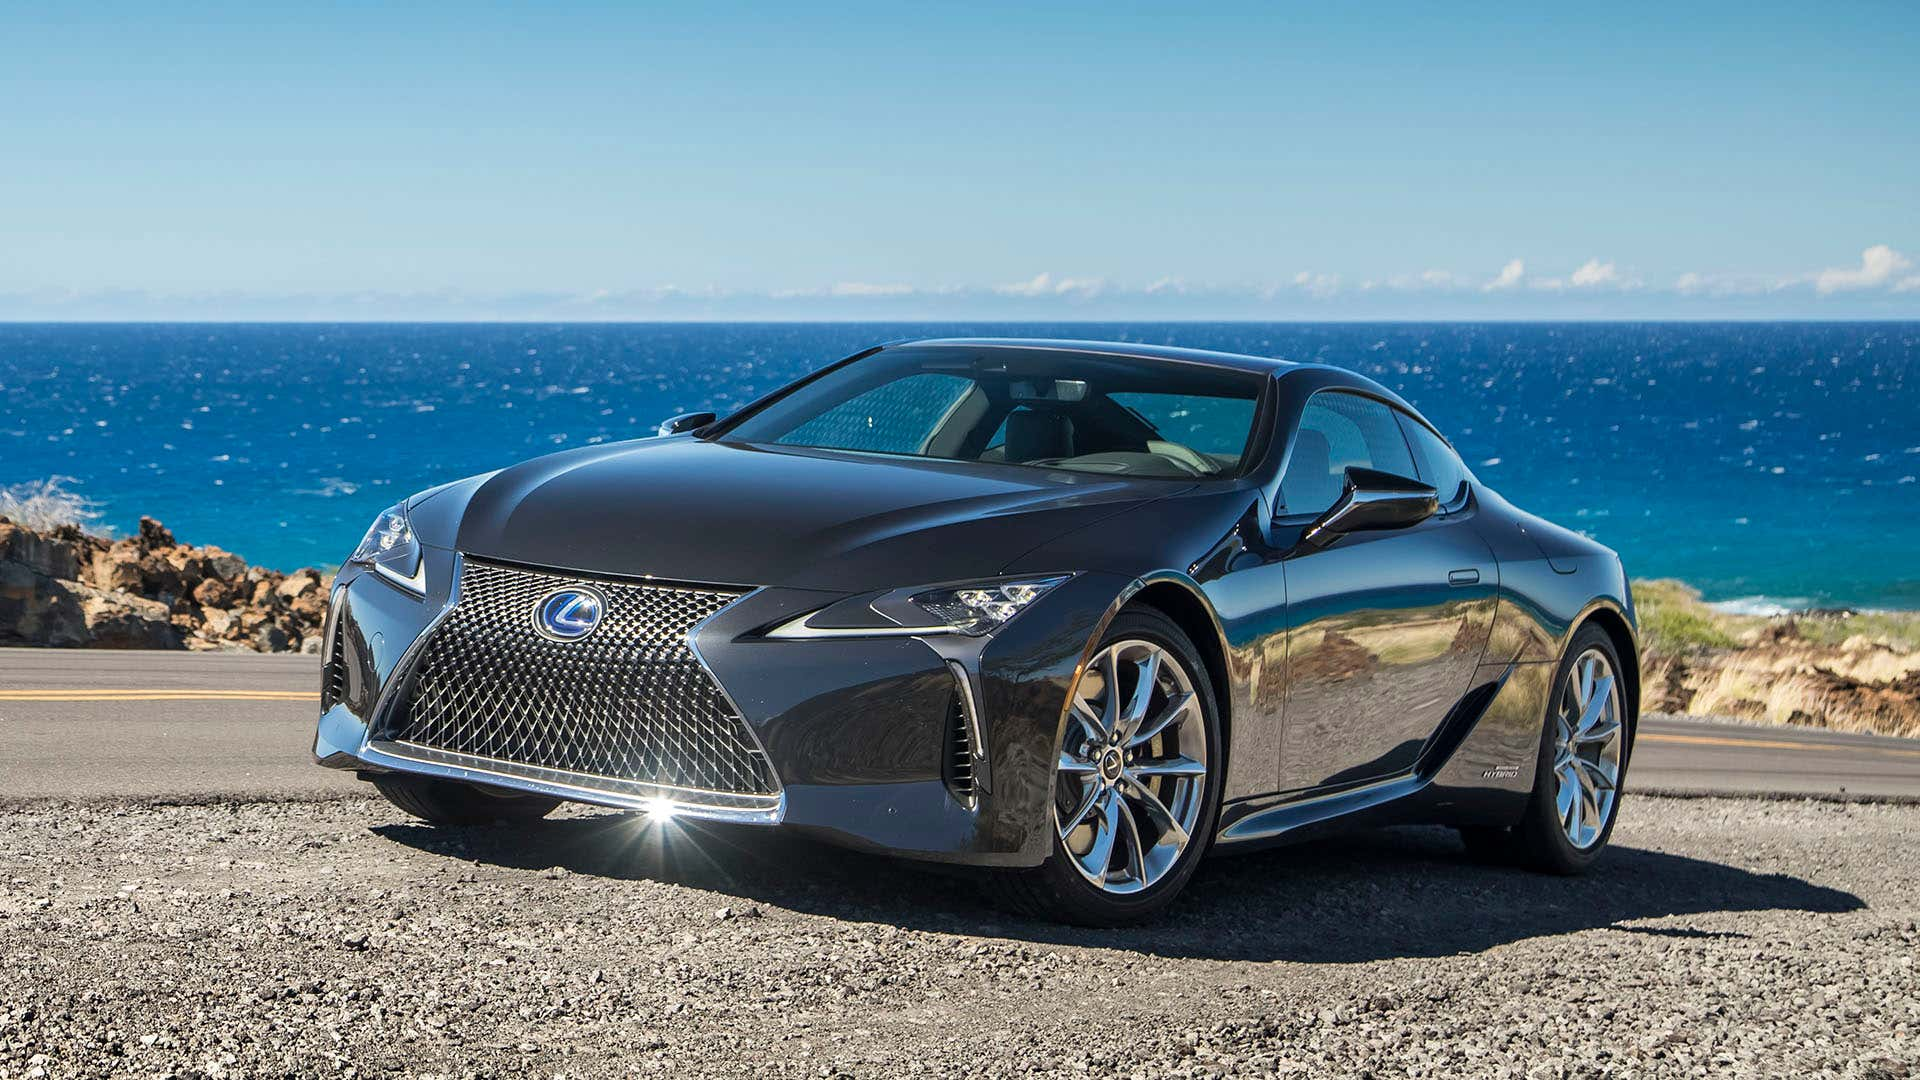 The Lexus LC 500 is one of the most beautiful hybrids ever produced.